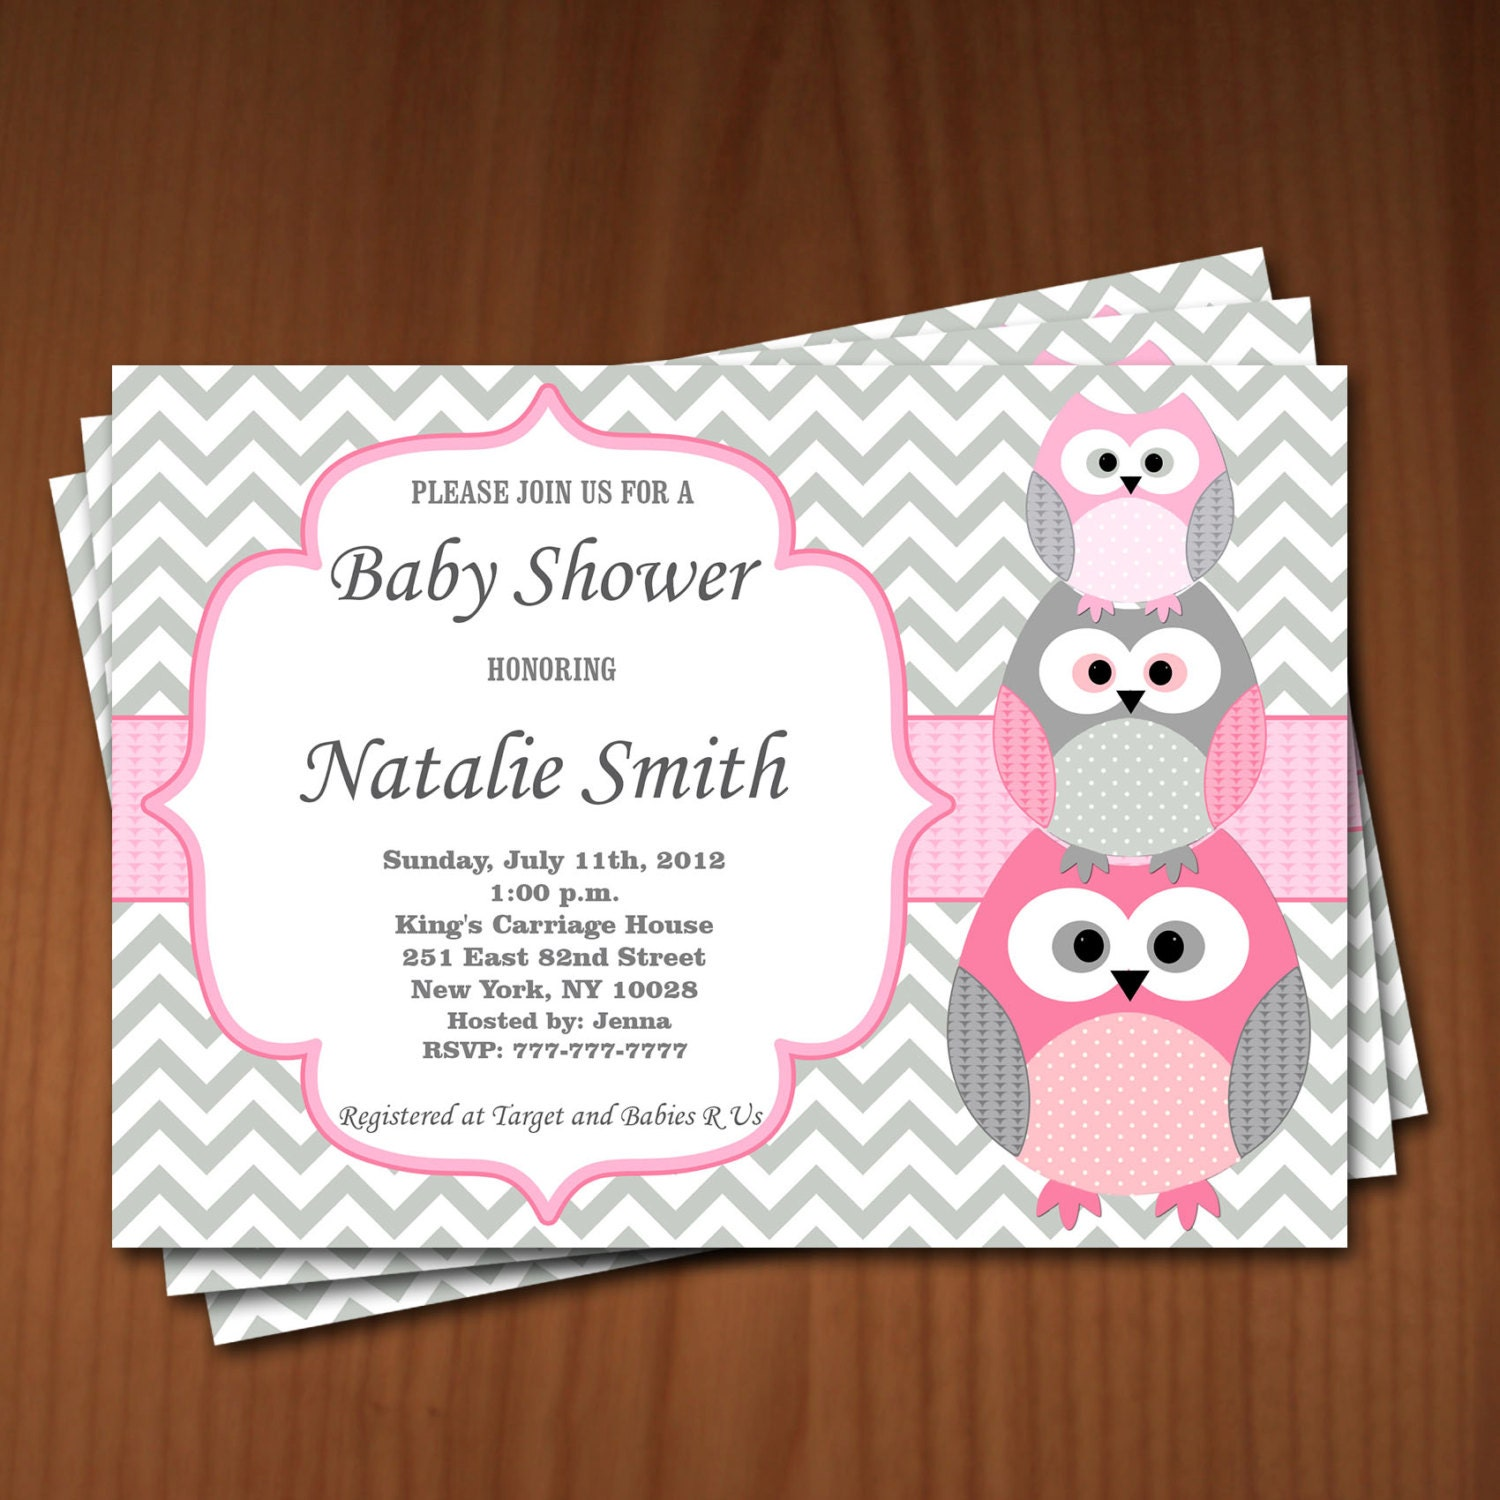 Cheap baby shower invitation idealstalist cheap baby shower invitation solutioingenieria Gallery